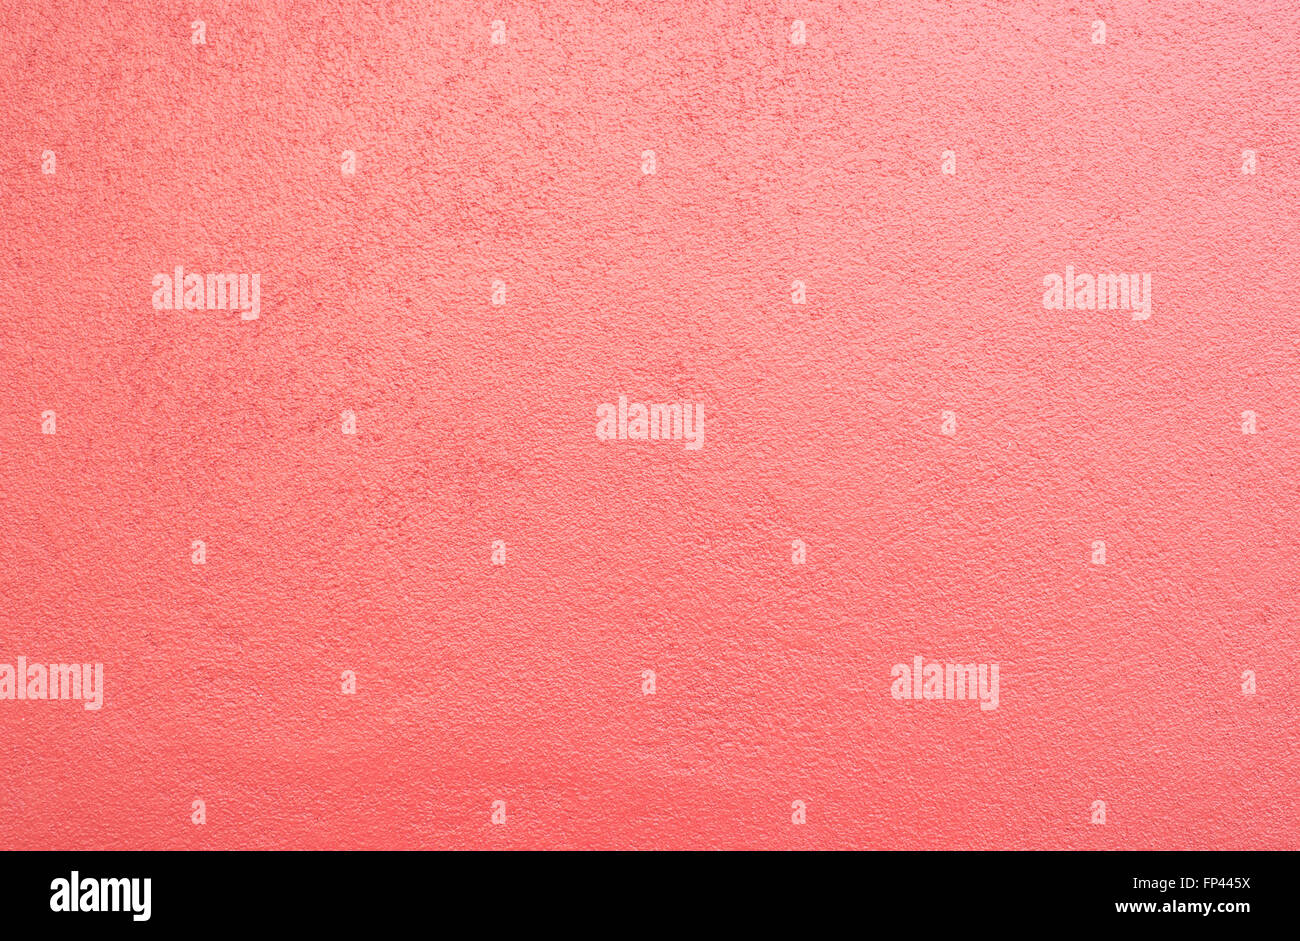 Background with delicate abstract  texture  for printing brochures or papers - Stock Image